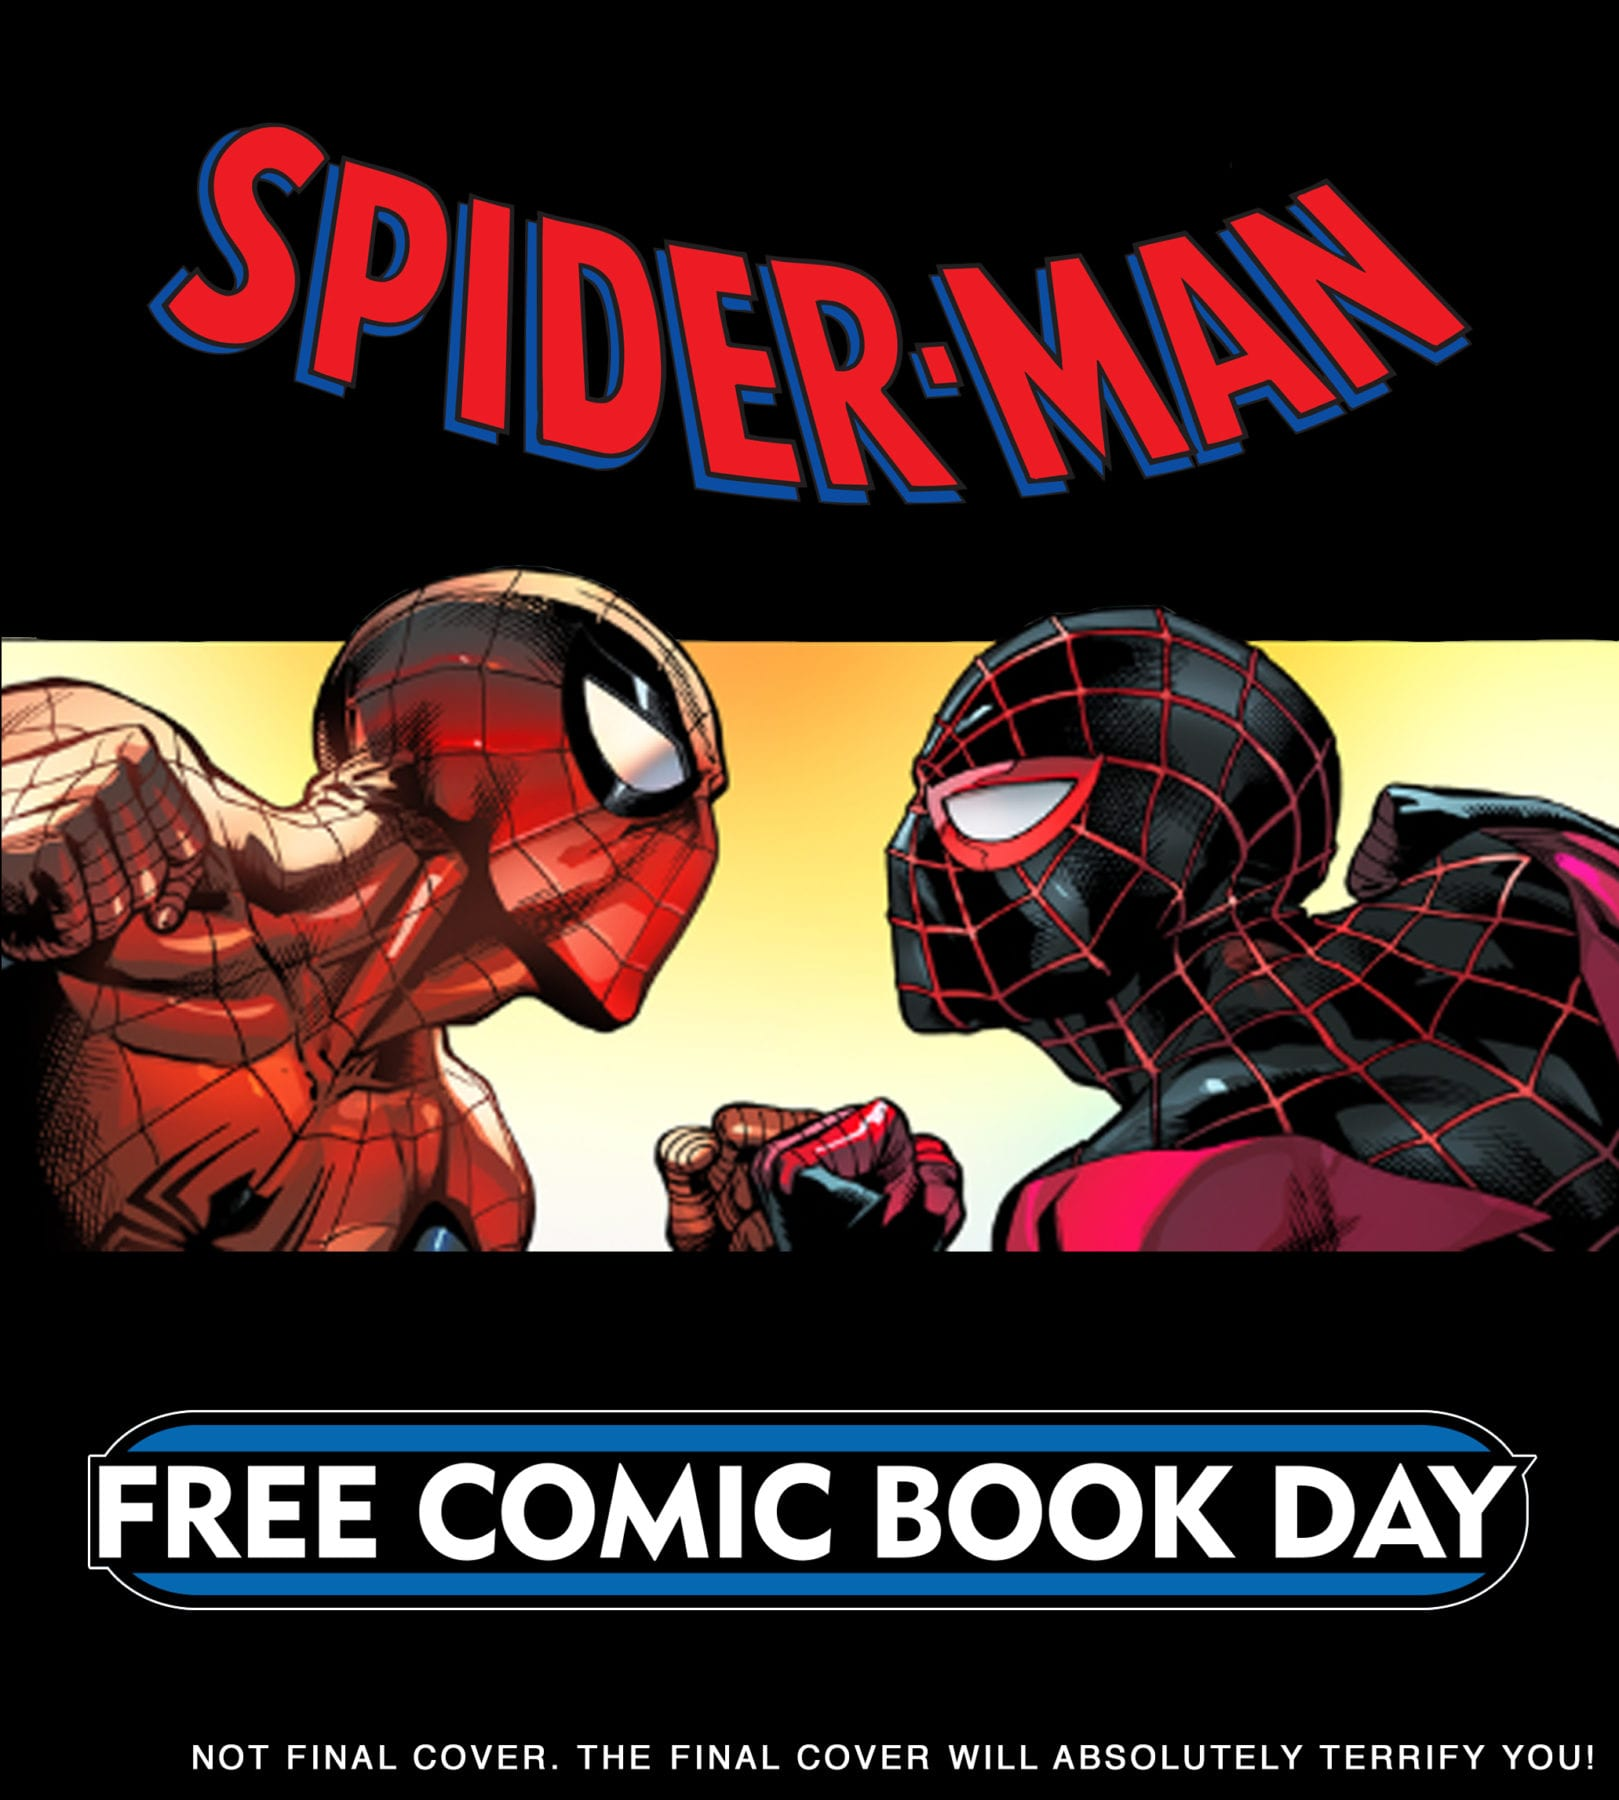 Free Comic Book Day Postcard: Marvel Announces Spider-Man/Venom #1 For Free Comic Book